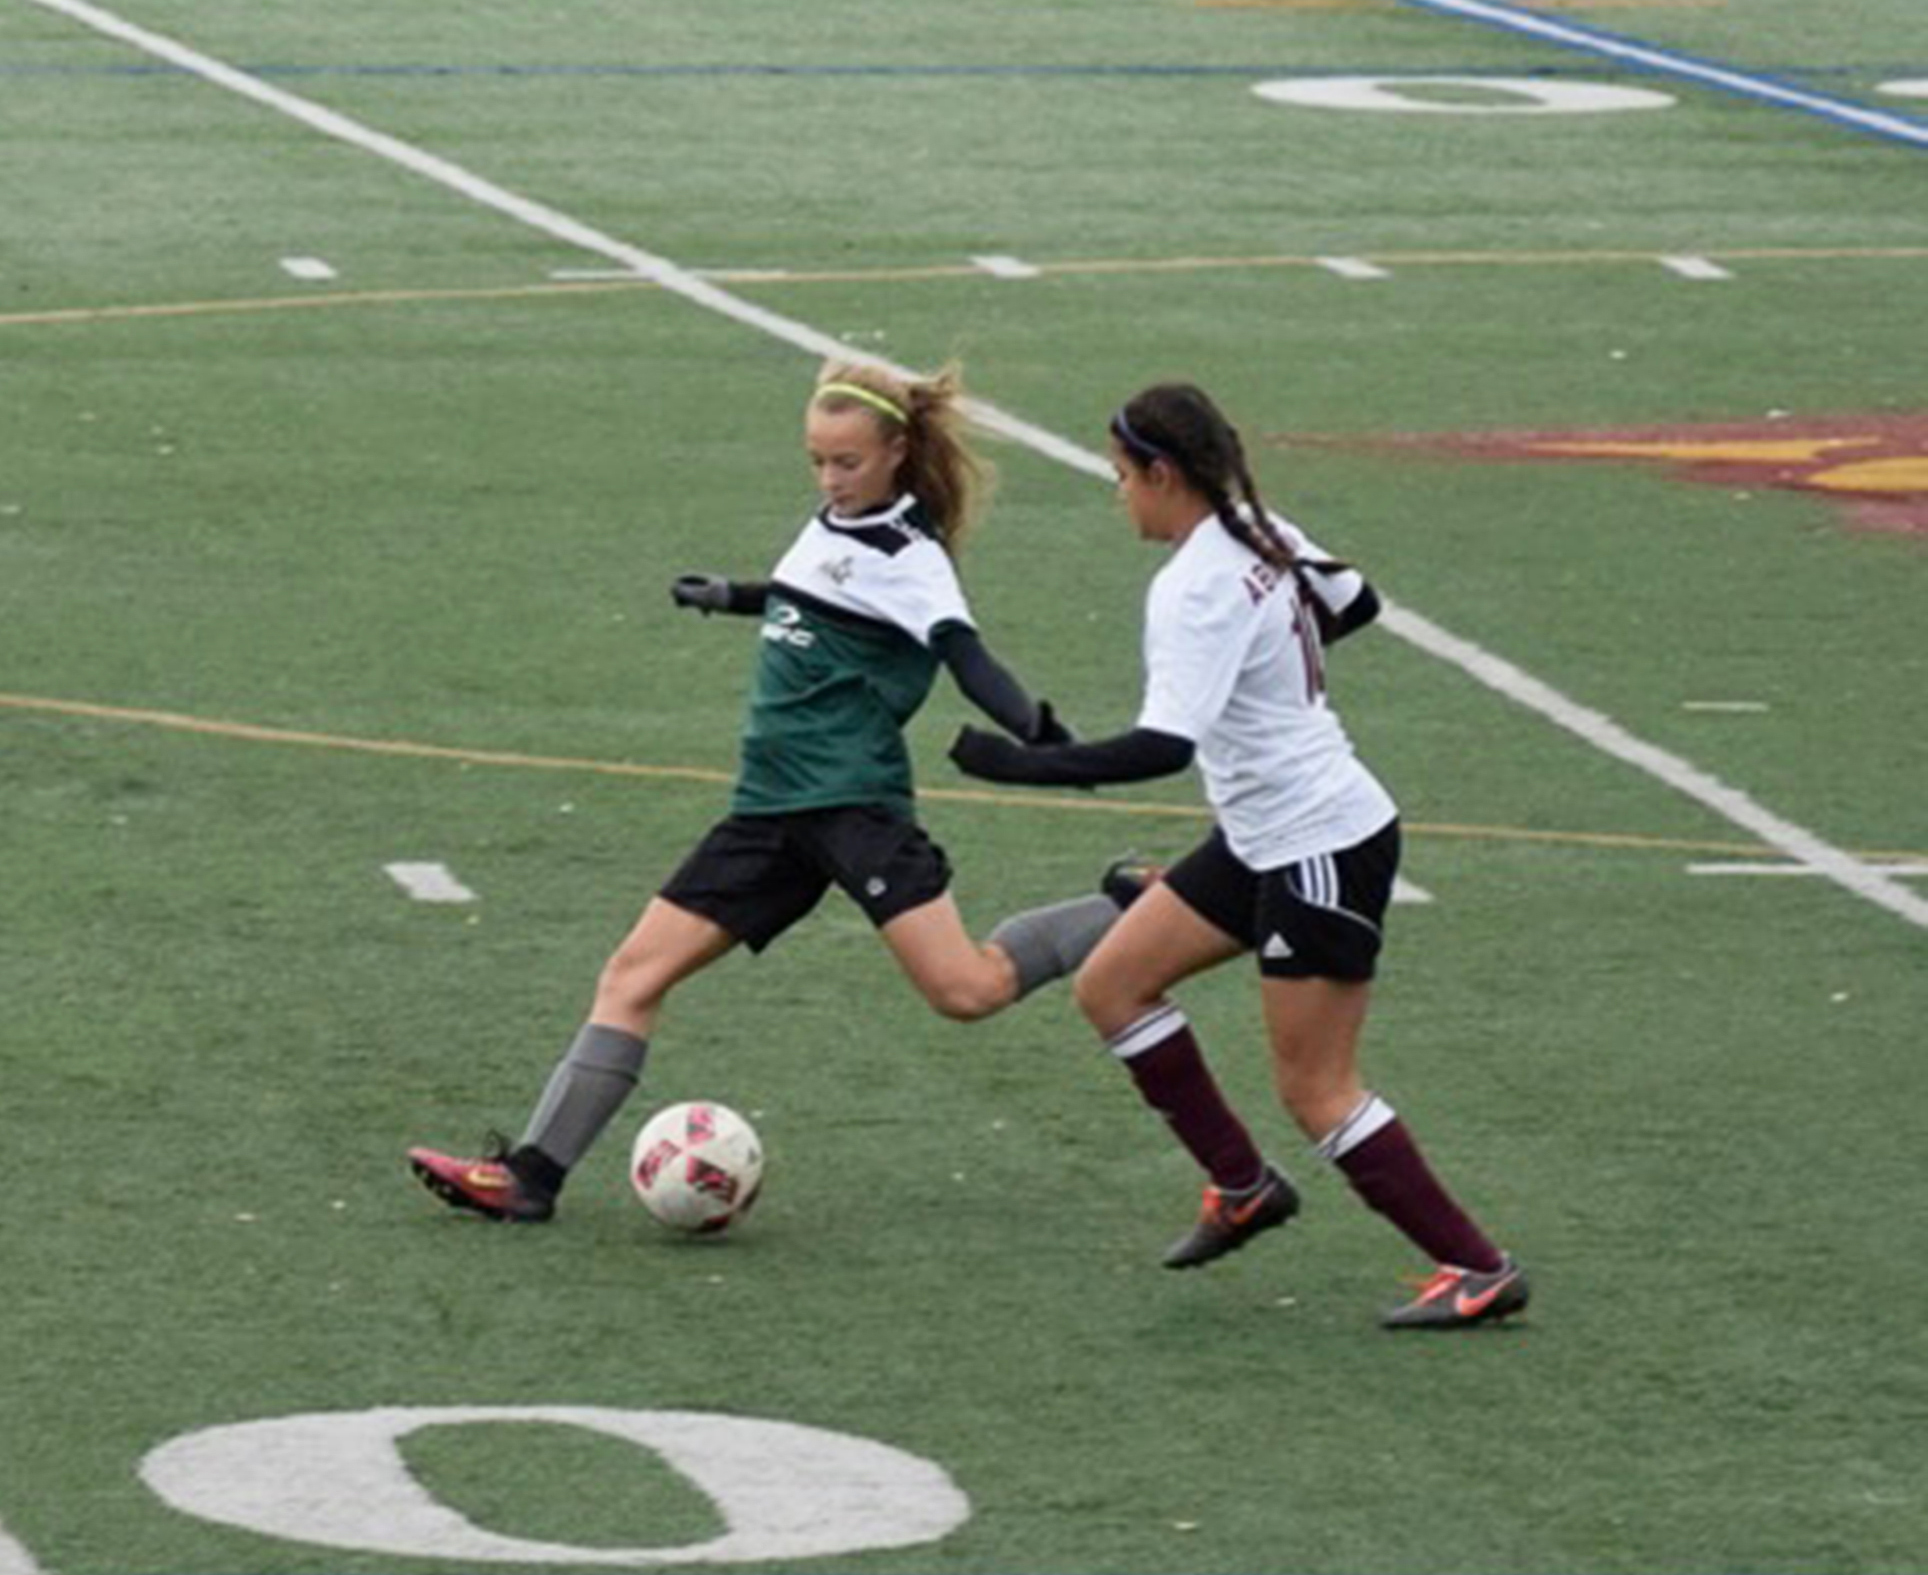 Two girls playing soccer one of them is Chayce Buono